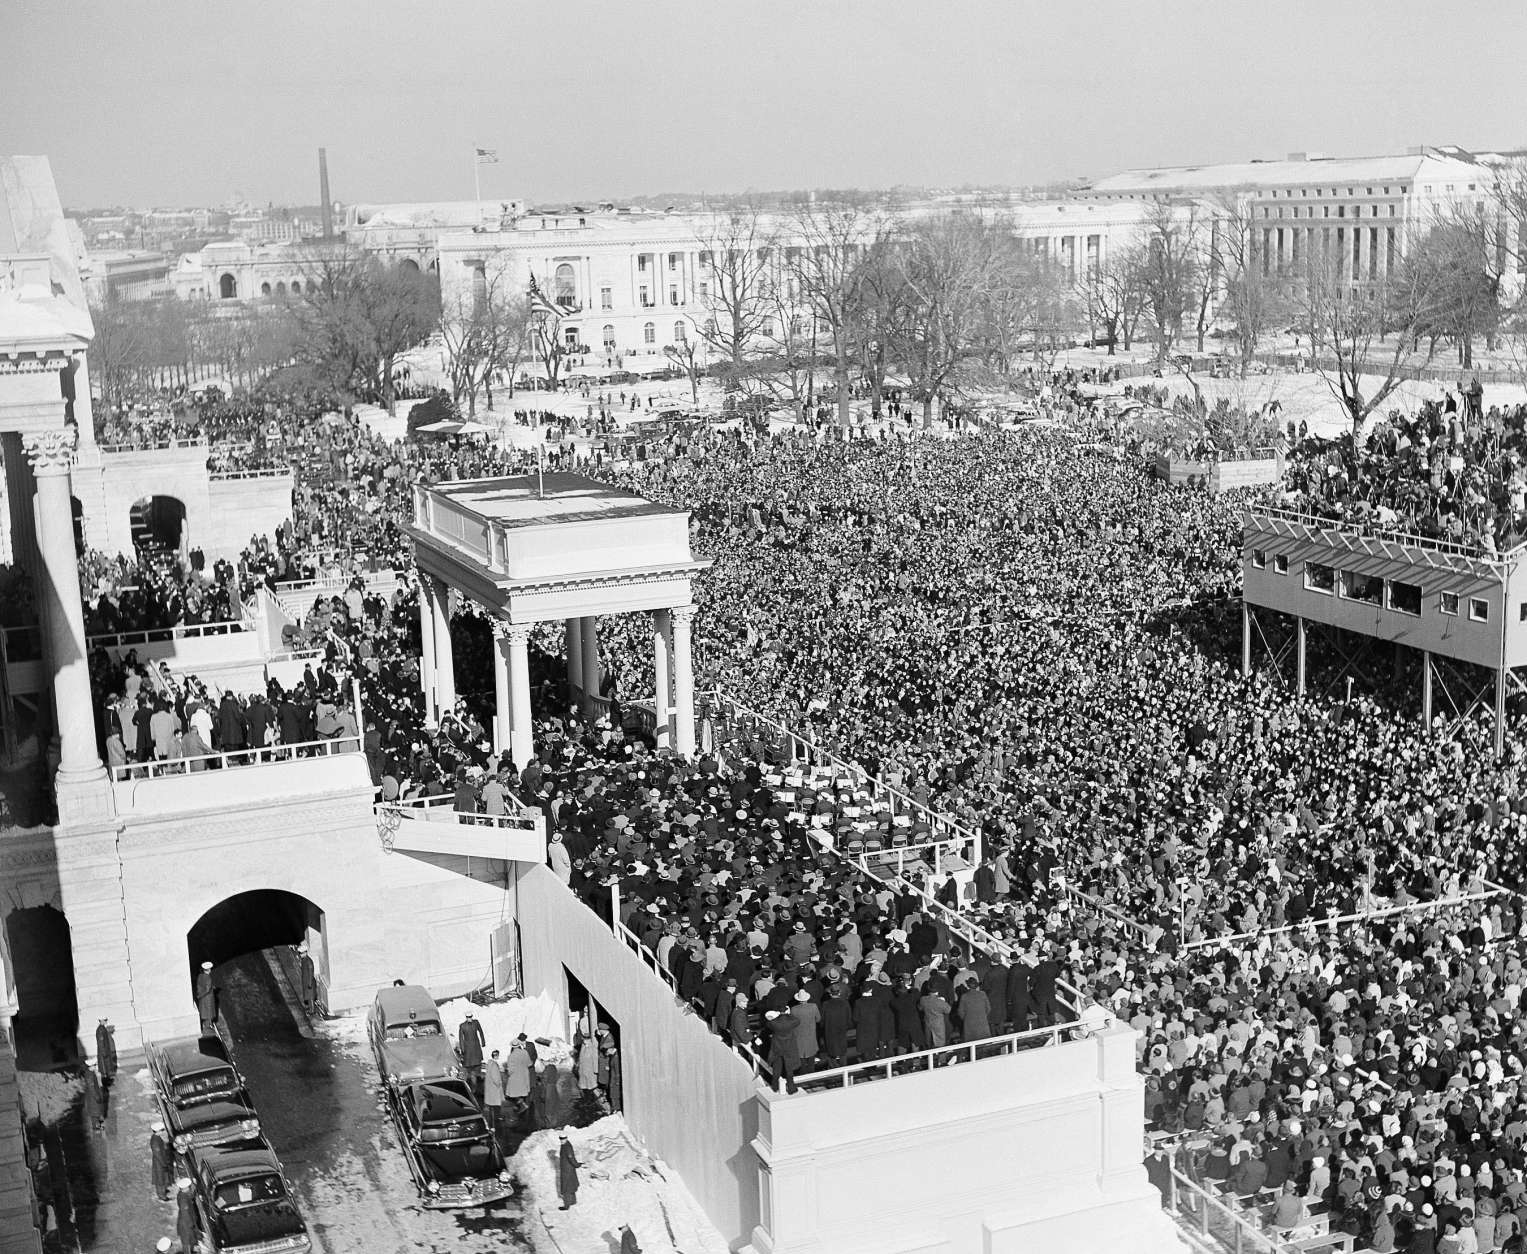 ** FILE ** In this Jan. 20, 1961 black-and-white file photo, shows a general view of the crowd in Capitol Plaza to witness the inauguration of John F. Kennedy as President of the United States.  President-elect Barack Obama's inauguration is expected to draw 1 million-plus to the capital, and already some lawmakers have stopped taking ticket requests and hotels have booked up. (AP Photo, File)